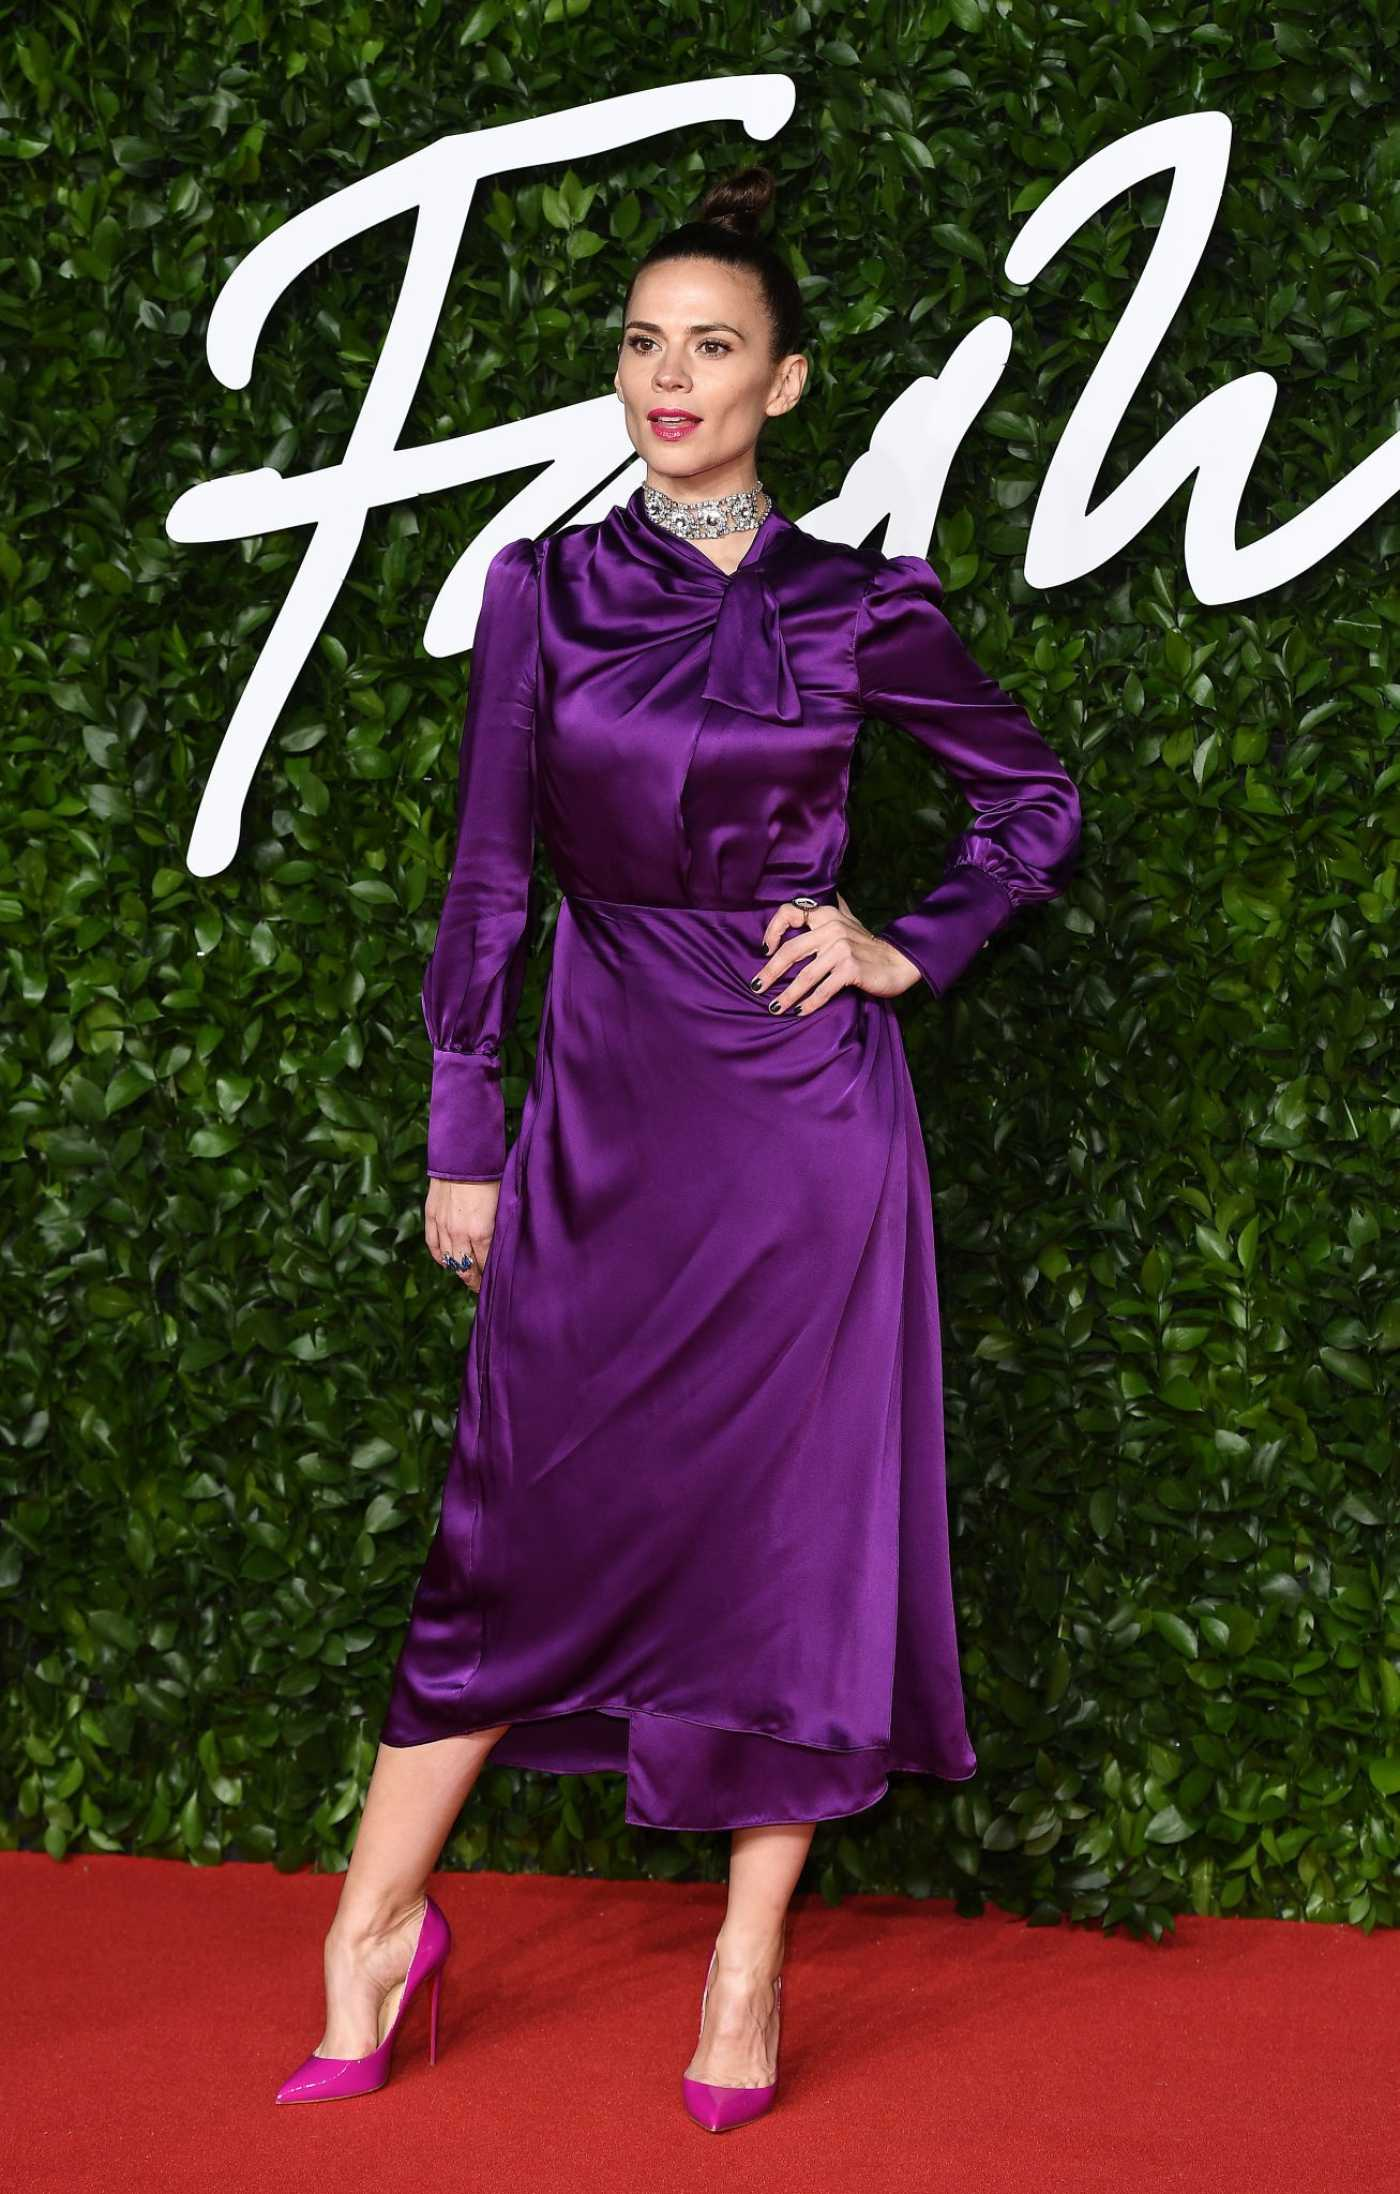 Hayley Atwell Attends 2019 Fashion Awards at Royal Albert Hall in London 12/02/2019